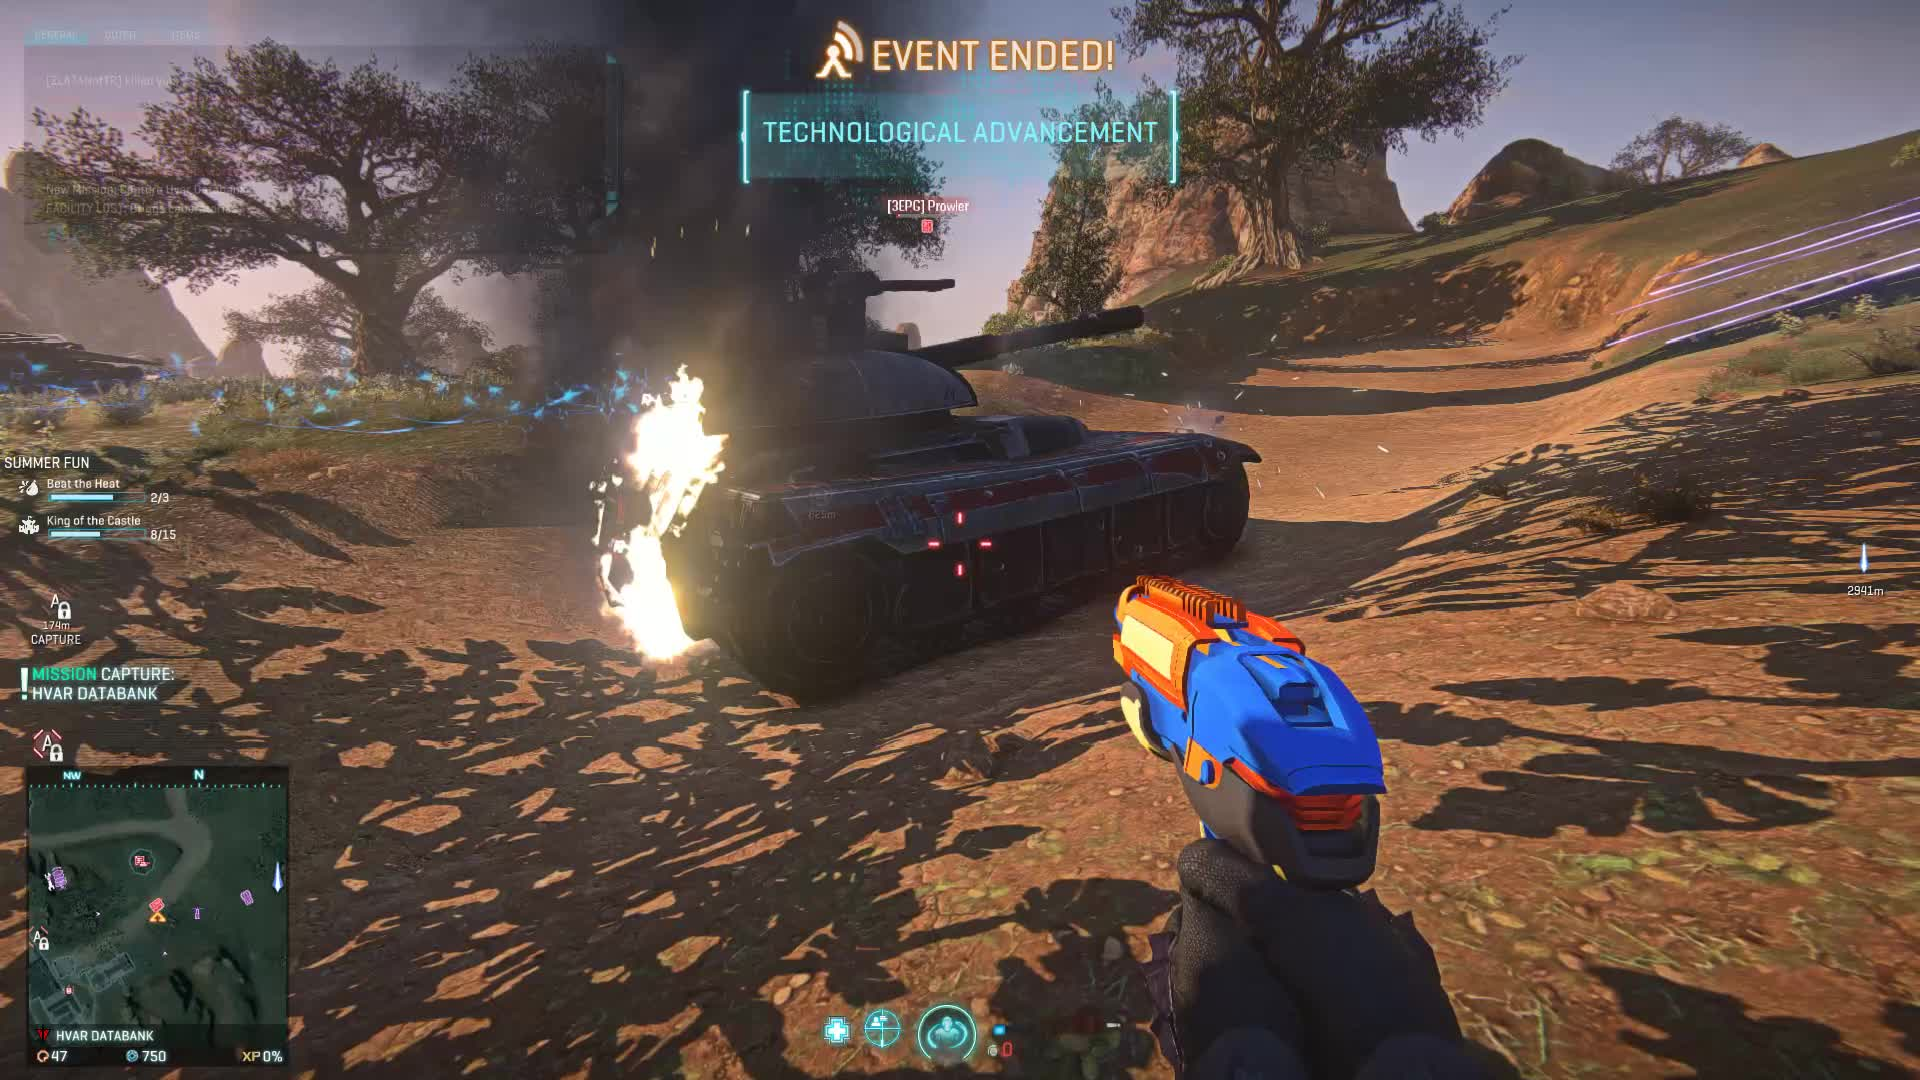 planetside 2, With a water pistol GIFs